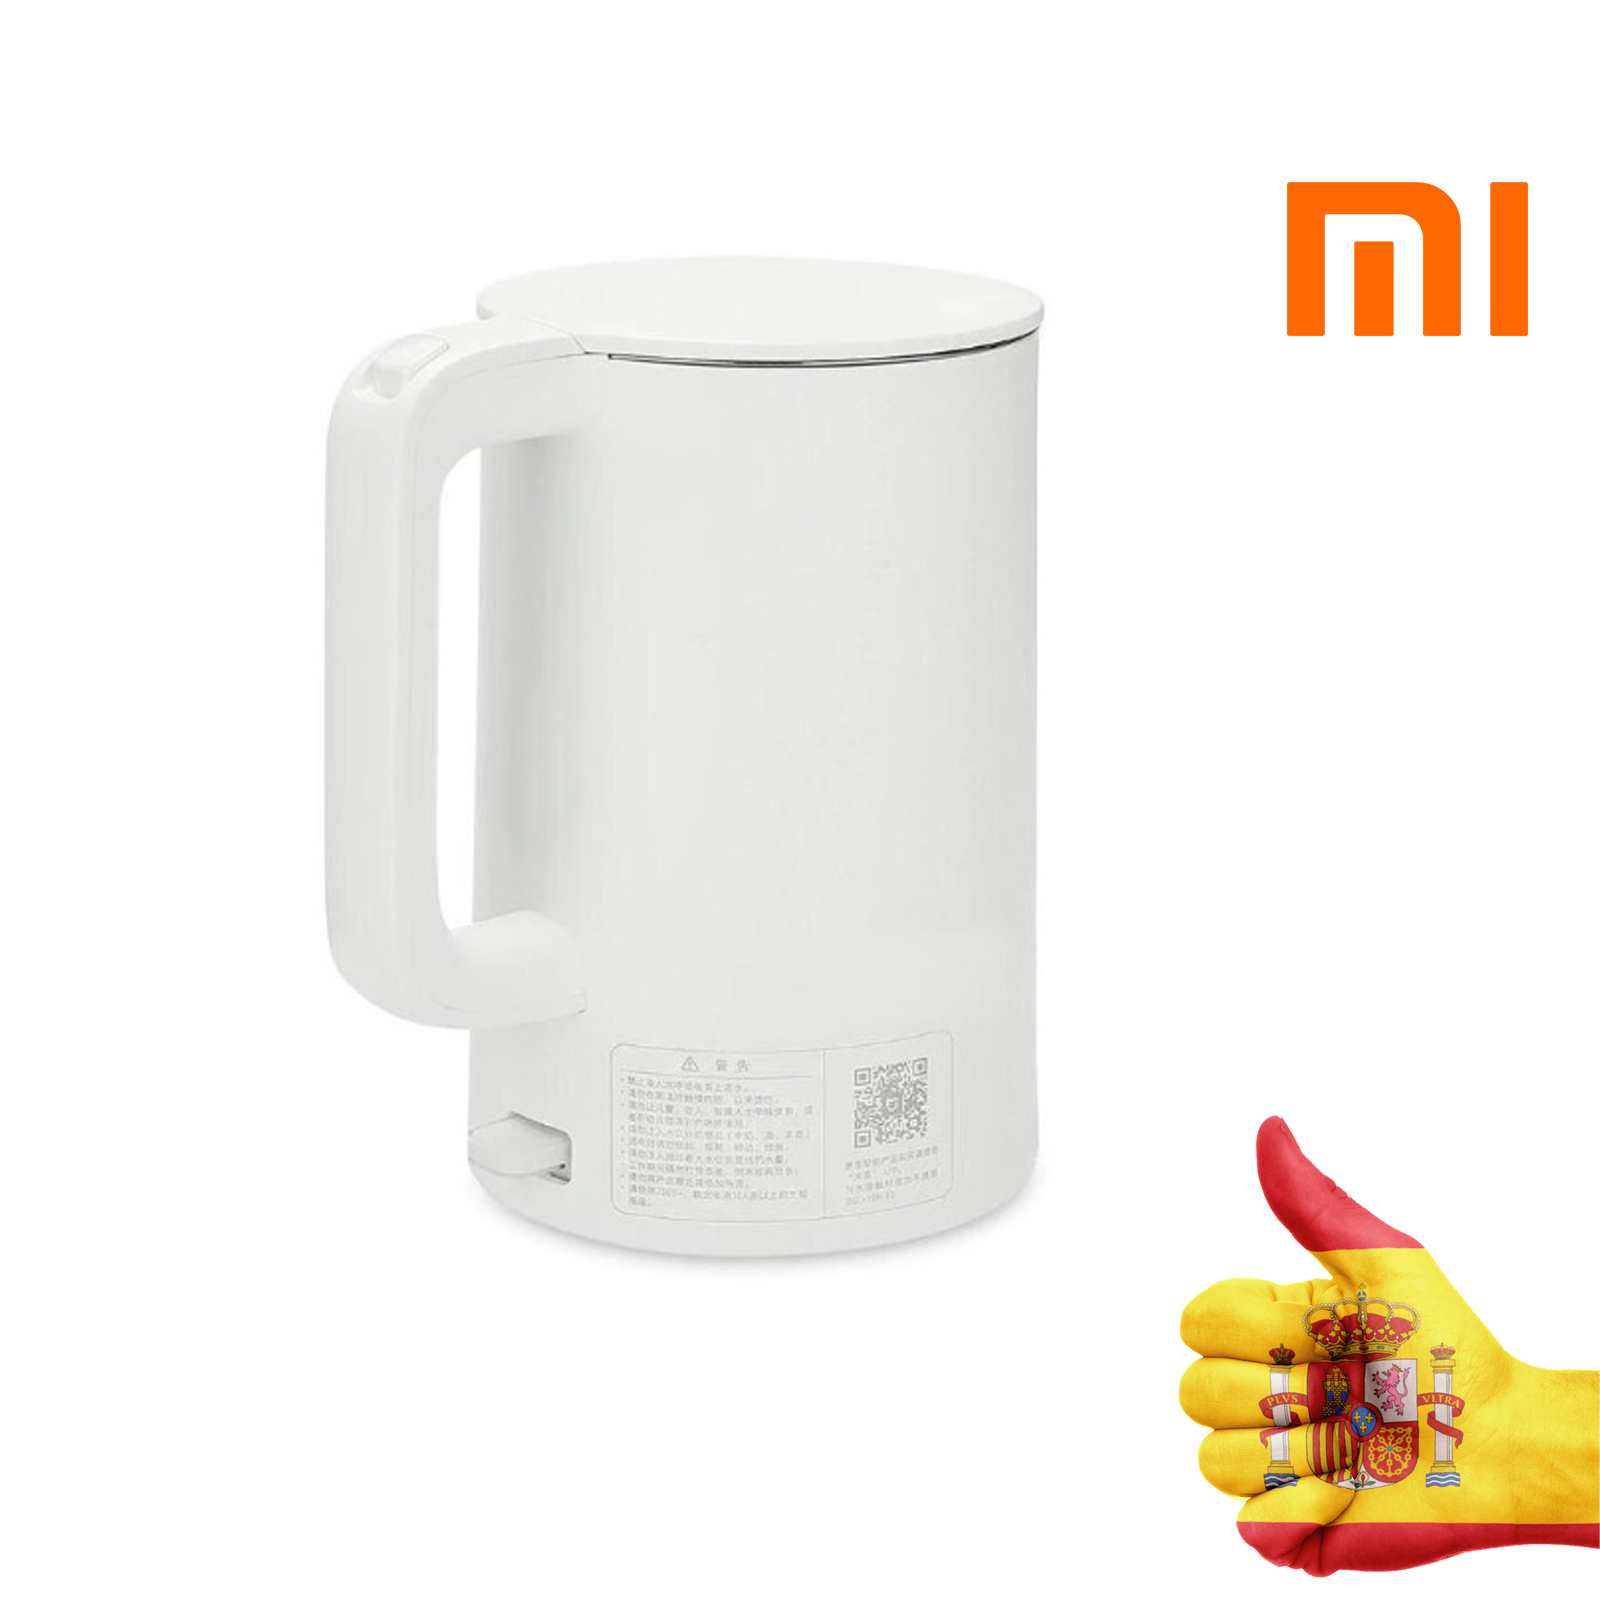 Original Xiaomi My Jia Smart Thermostatic Electric Kettle 1.5L 12 Hours Thermostat With Smart My House